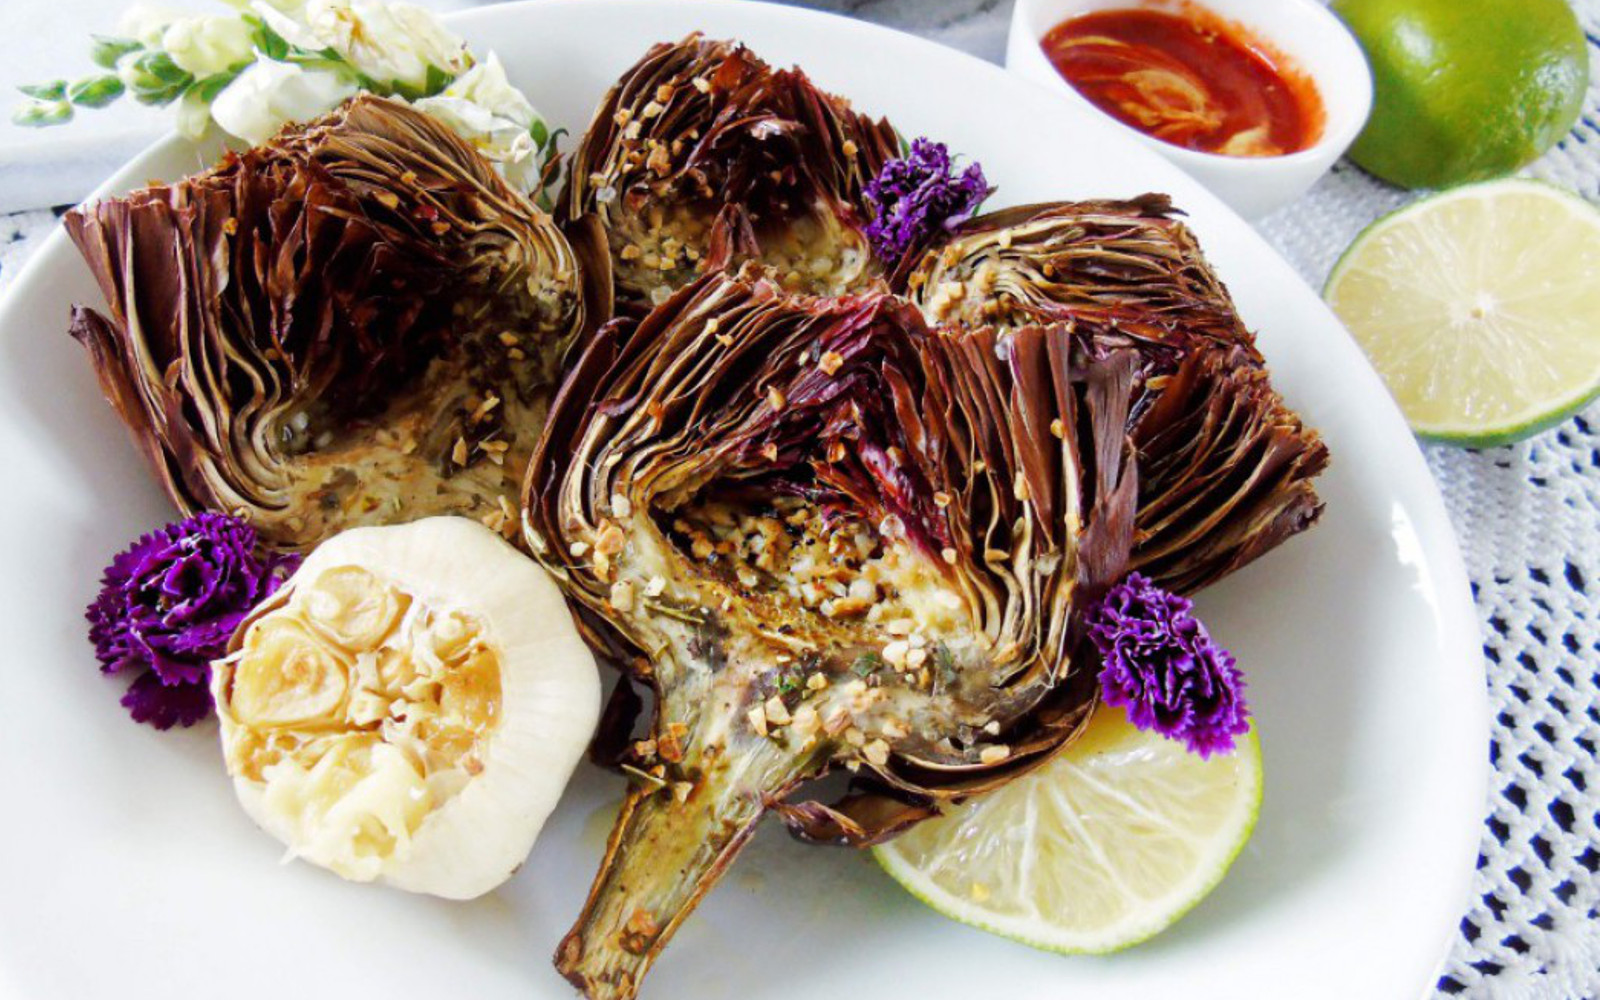 Whole Roasted Baby Artichoke